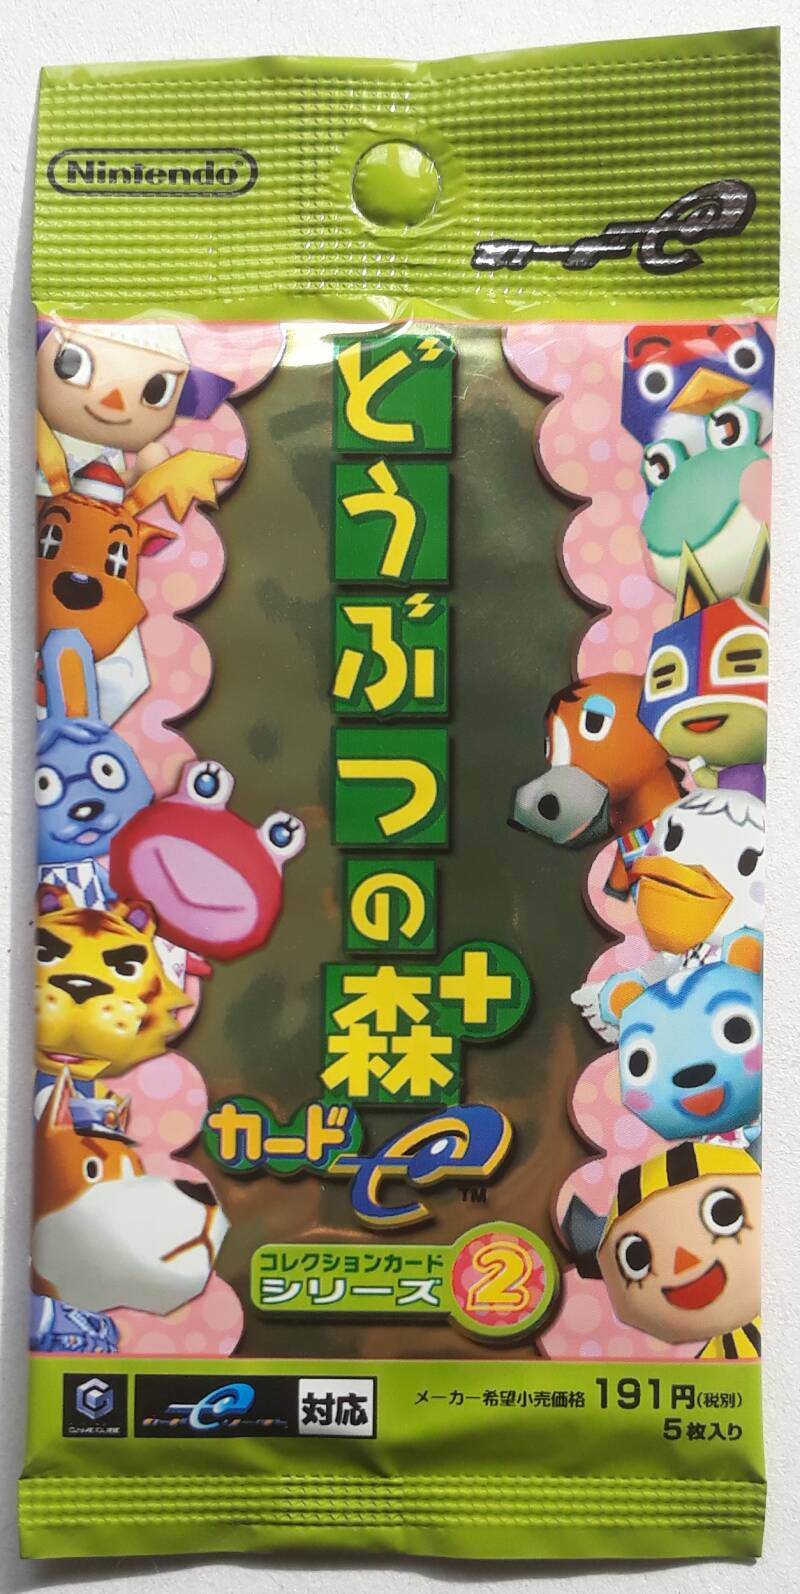 Gamecube / GBA - Doubutsu no Mori Series 2 e-Cards pack (NTSC-J)